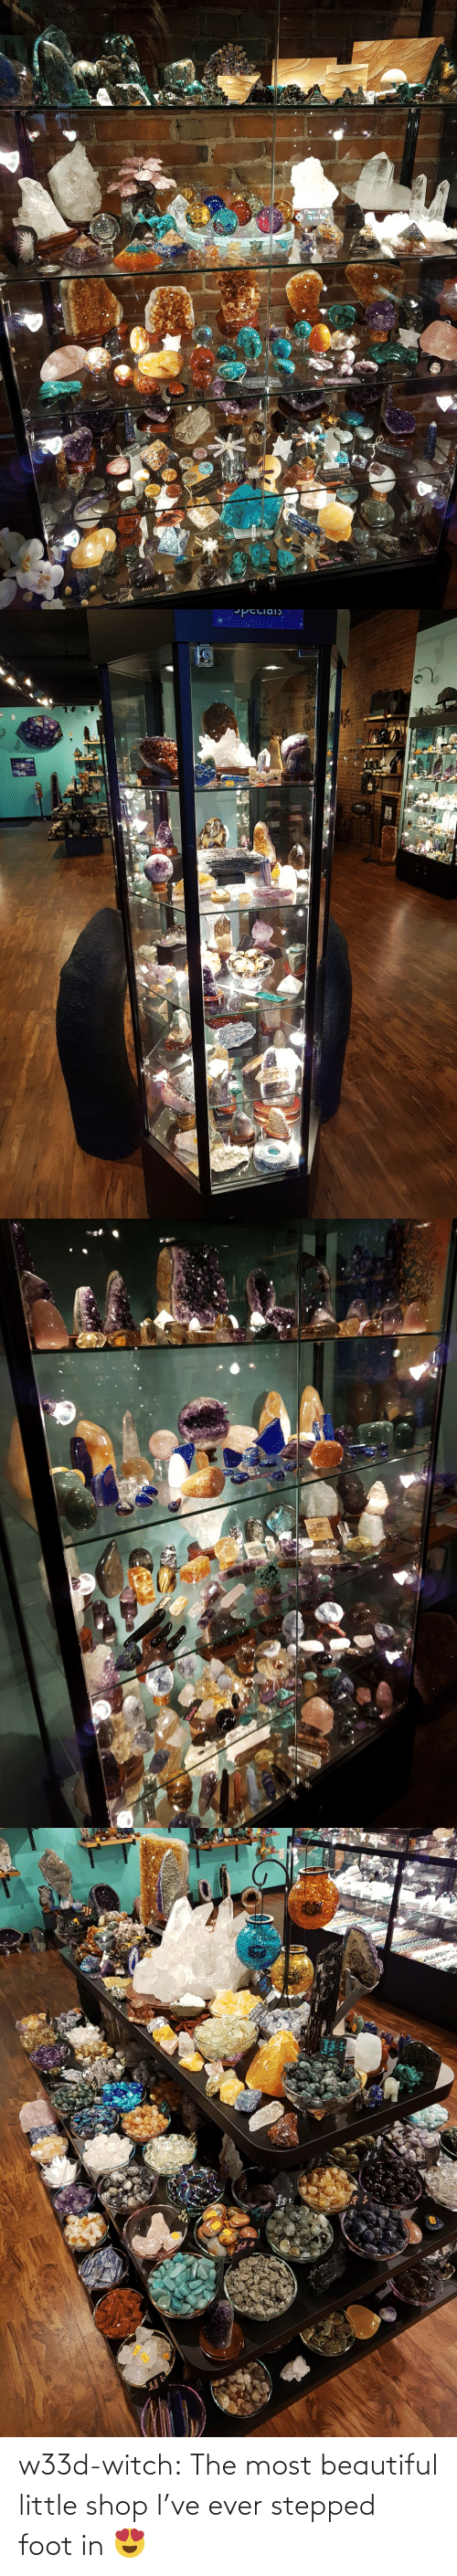 Ive: w33d-witch: The most beautiful little shop I've ever stepped foot in 😍